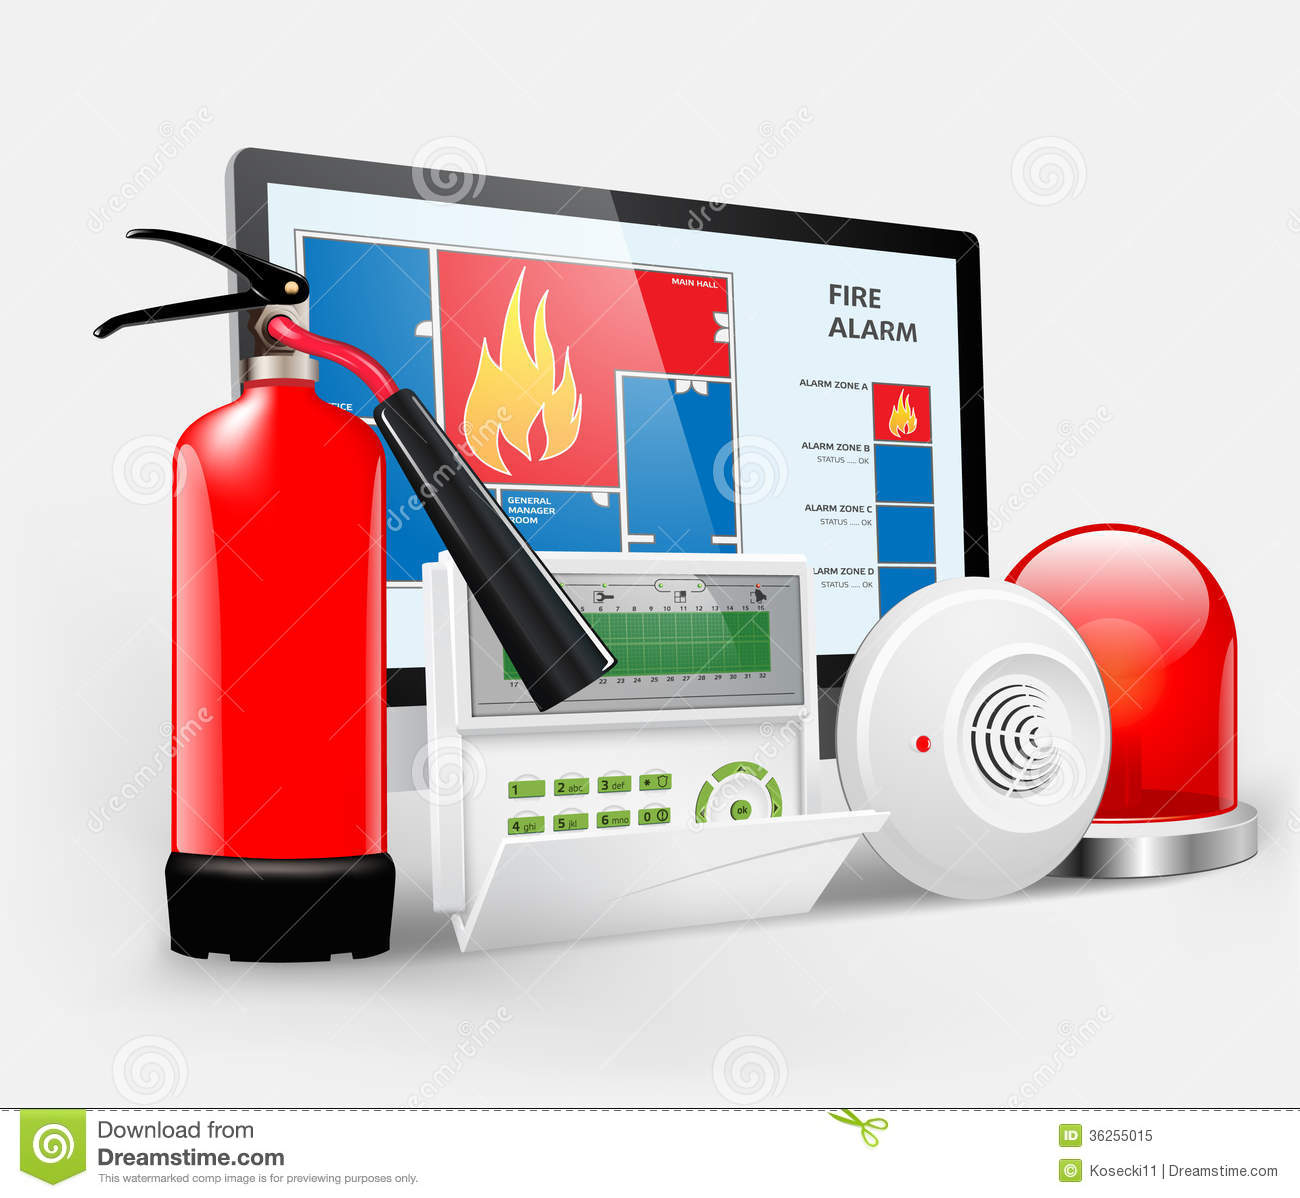 Access Fire Alarm Royalty Free Stock Photo Image 36255015